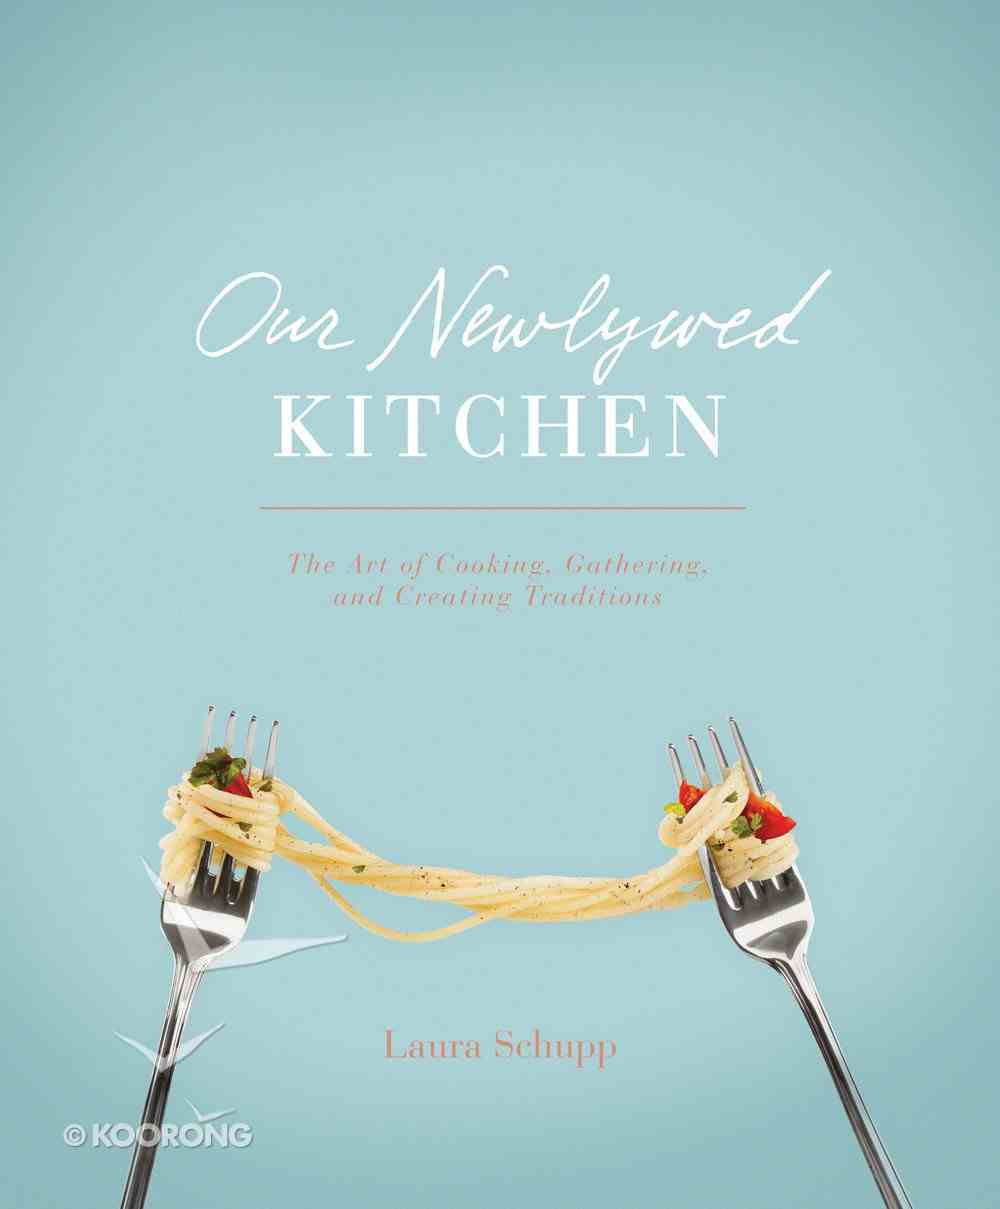 Our Newlywed Kitchen: The Art of Cooking, Gathering, and Creating Traditions Hardback